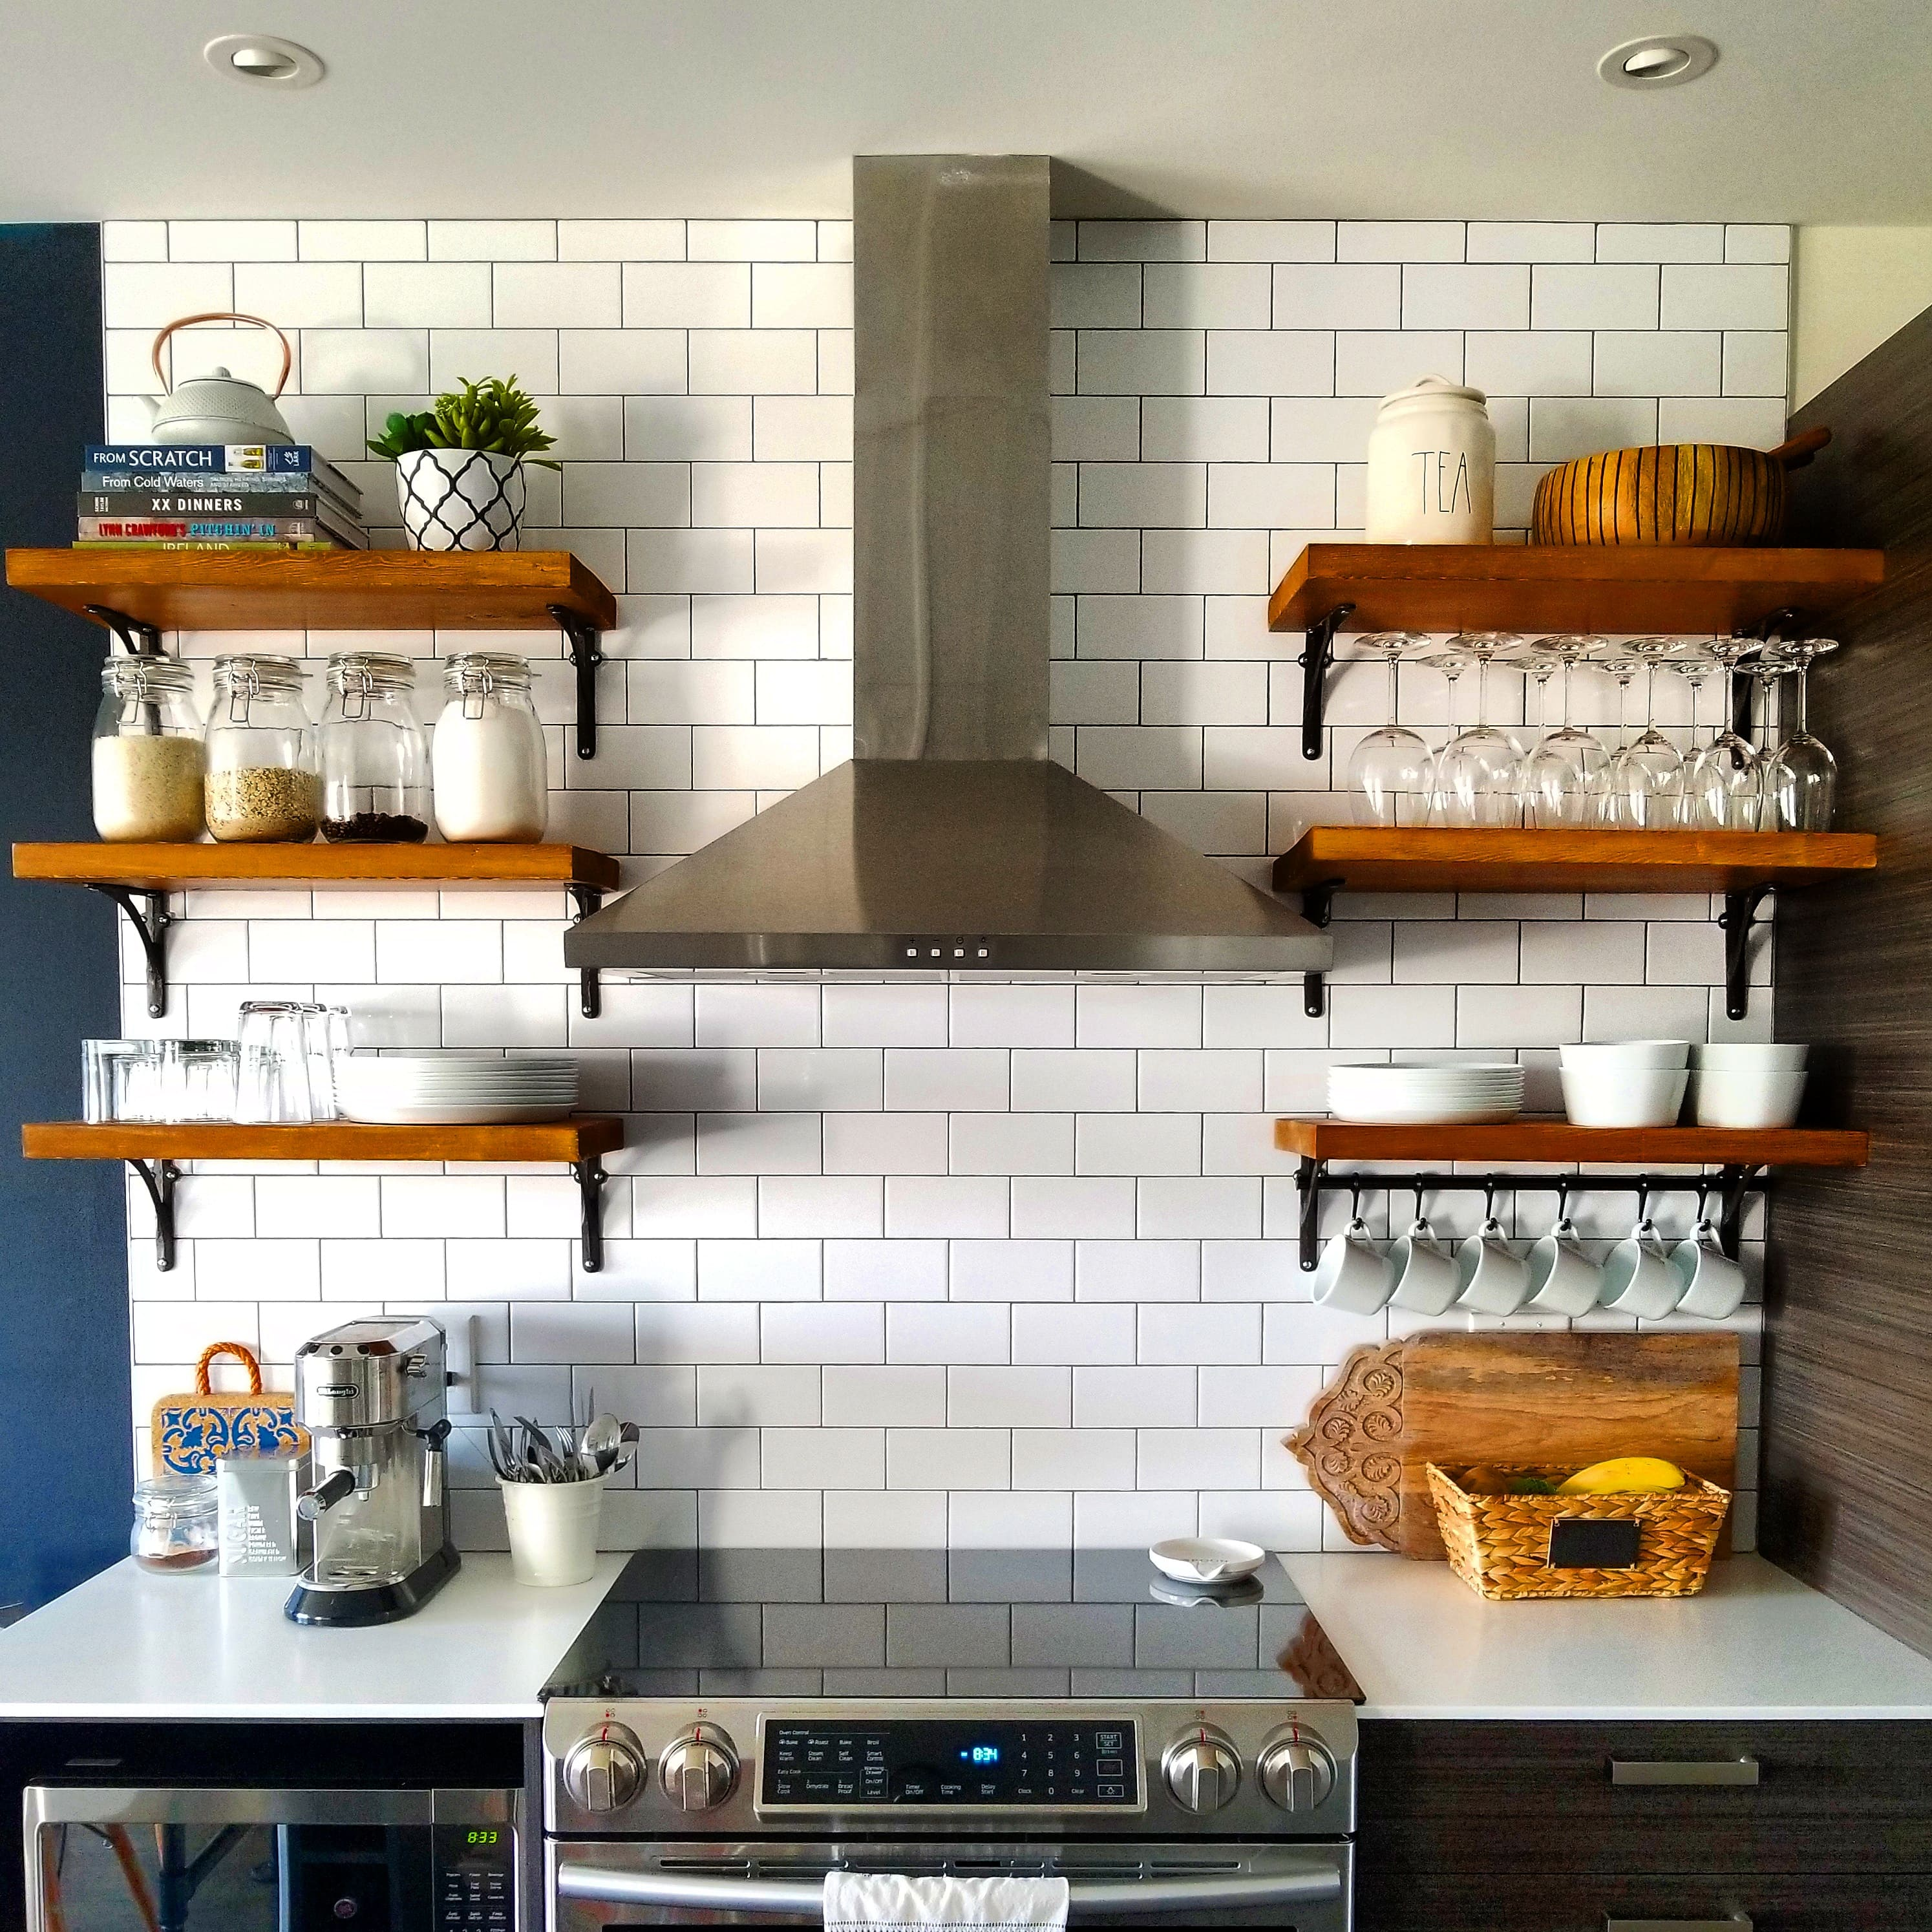 Open Kitchen Shelving How to Build and Mount Kitchen Shelves